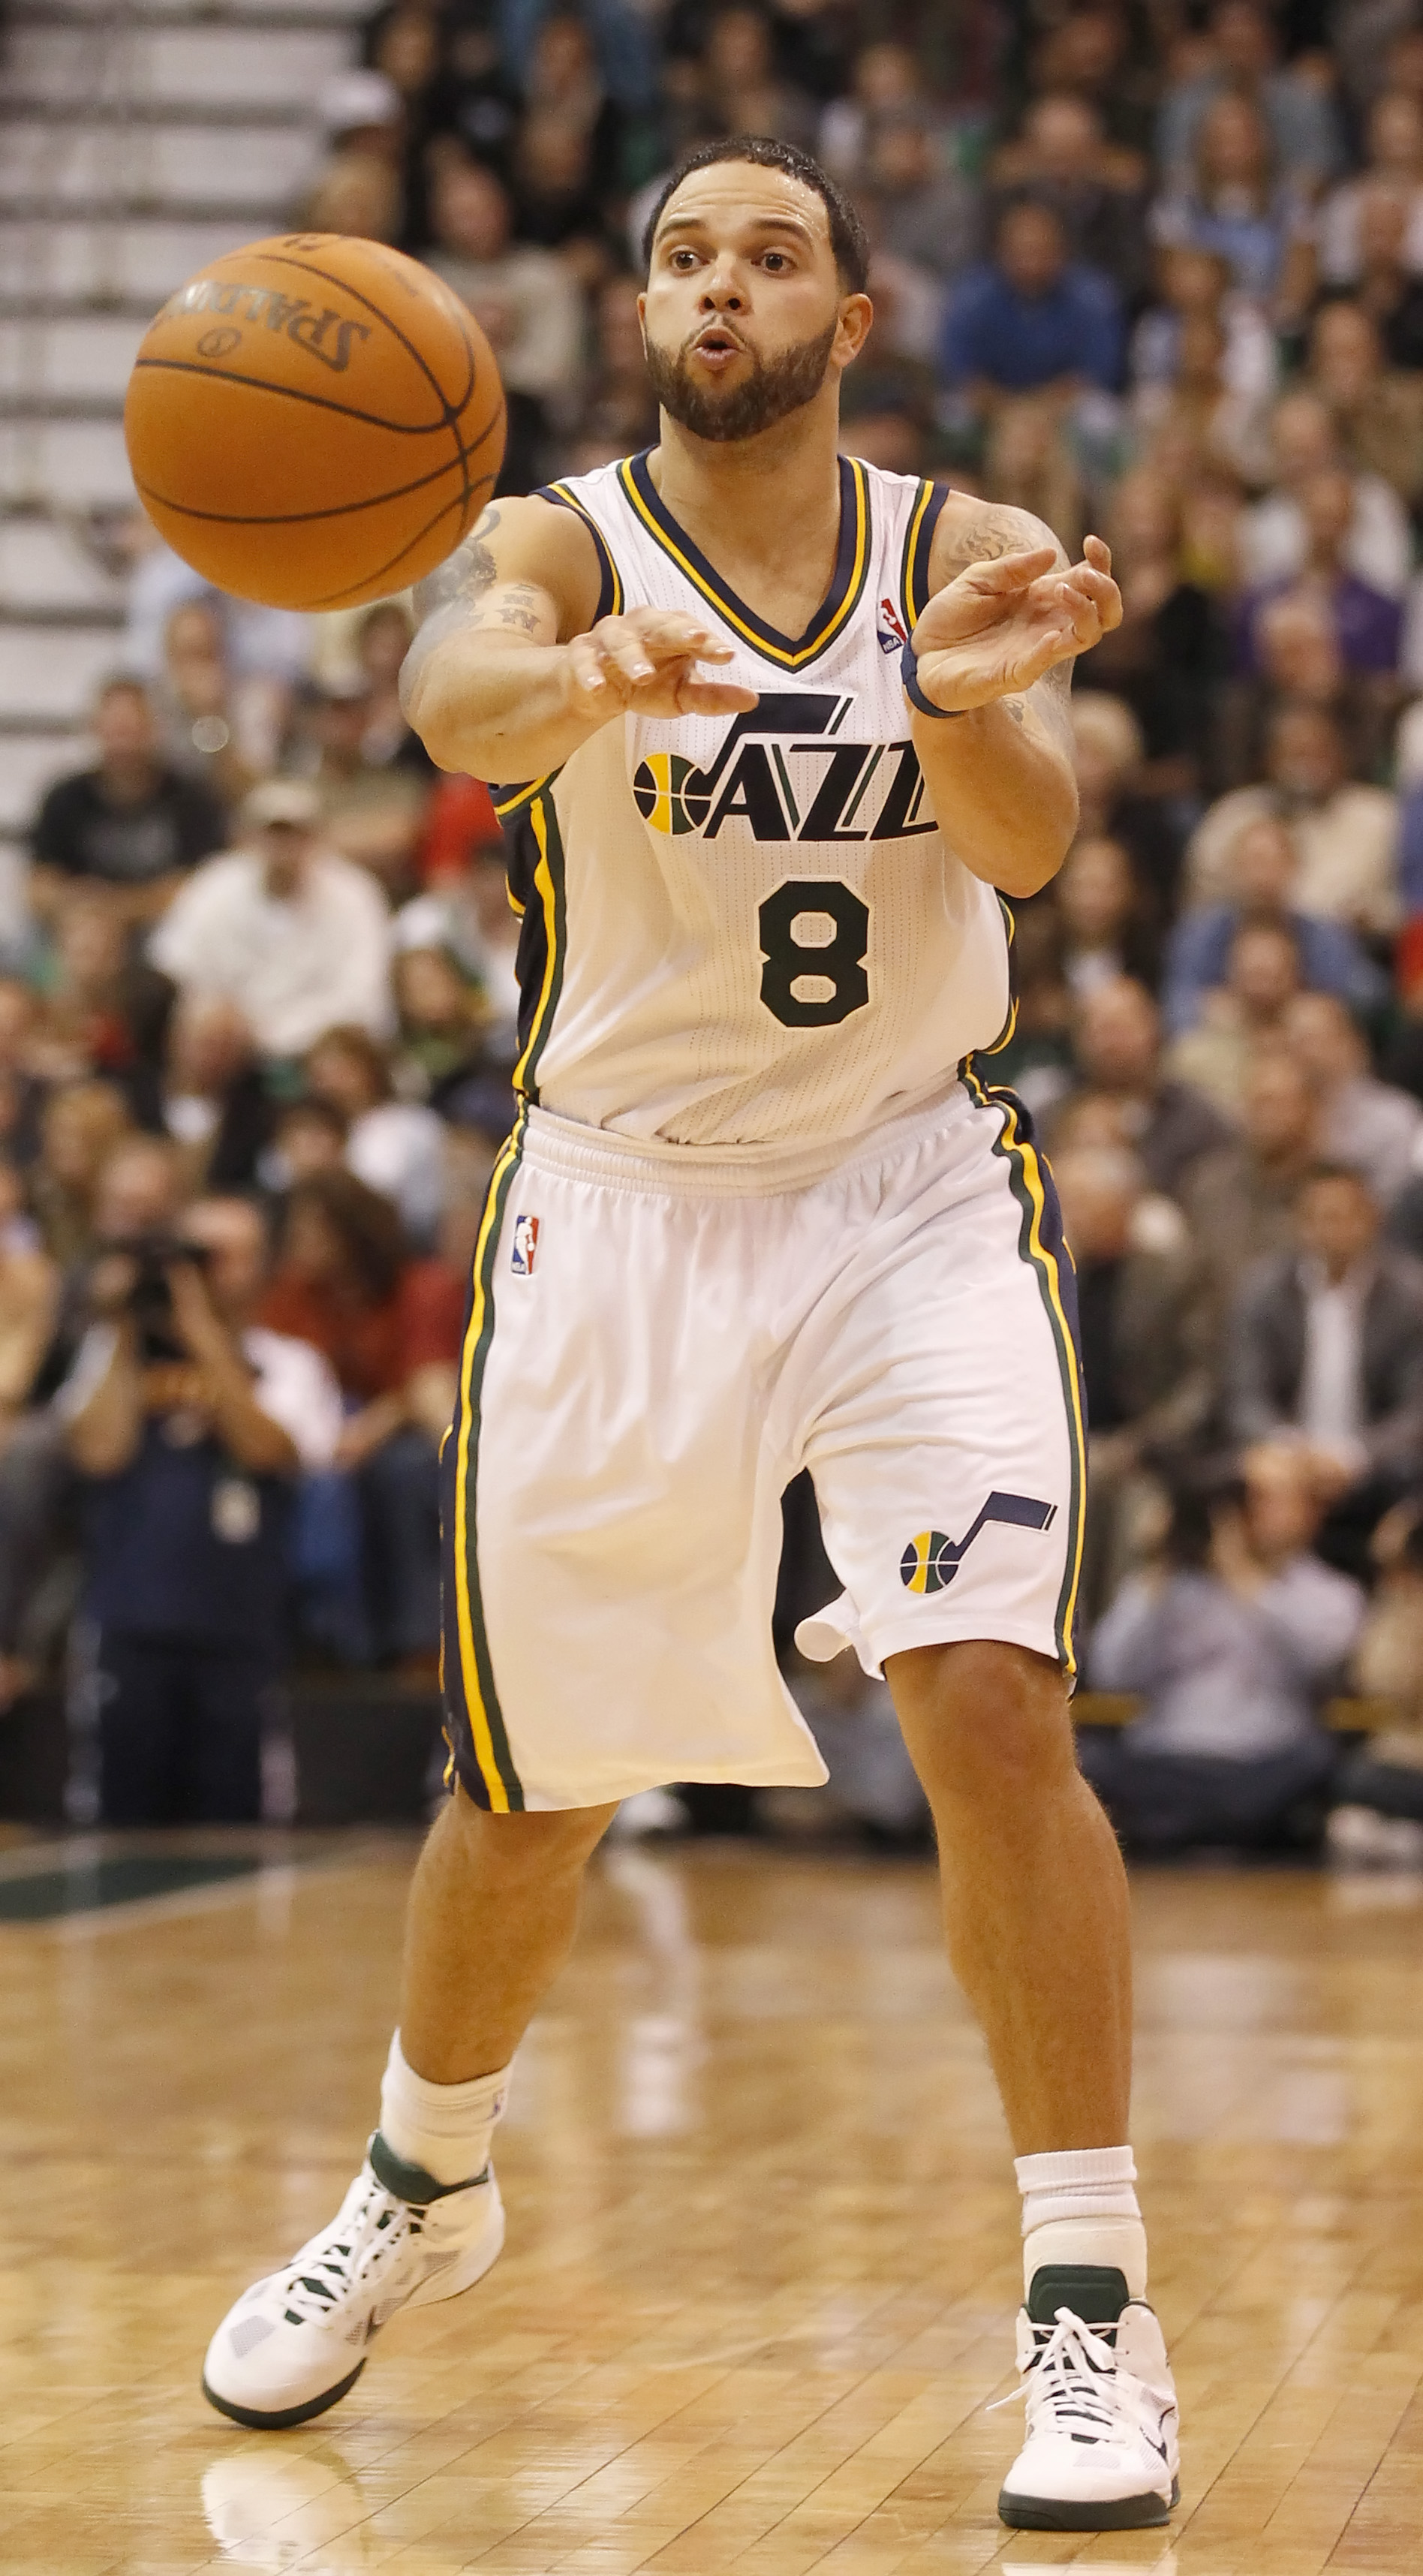 SALT LAKE CITY, UT - DECEMBER 8:  Deron Williams #8 of the Utah Jazz passes the ball during a game against the Miami Heat during the second half of an NBA game December 8, 2010 at Energy Solutions Arena in Salt Lake City, Utah. The Heat beat the Jazz 111-